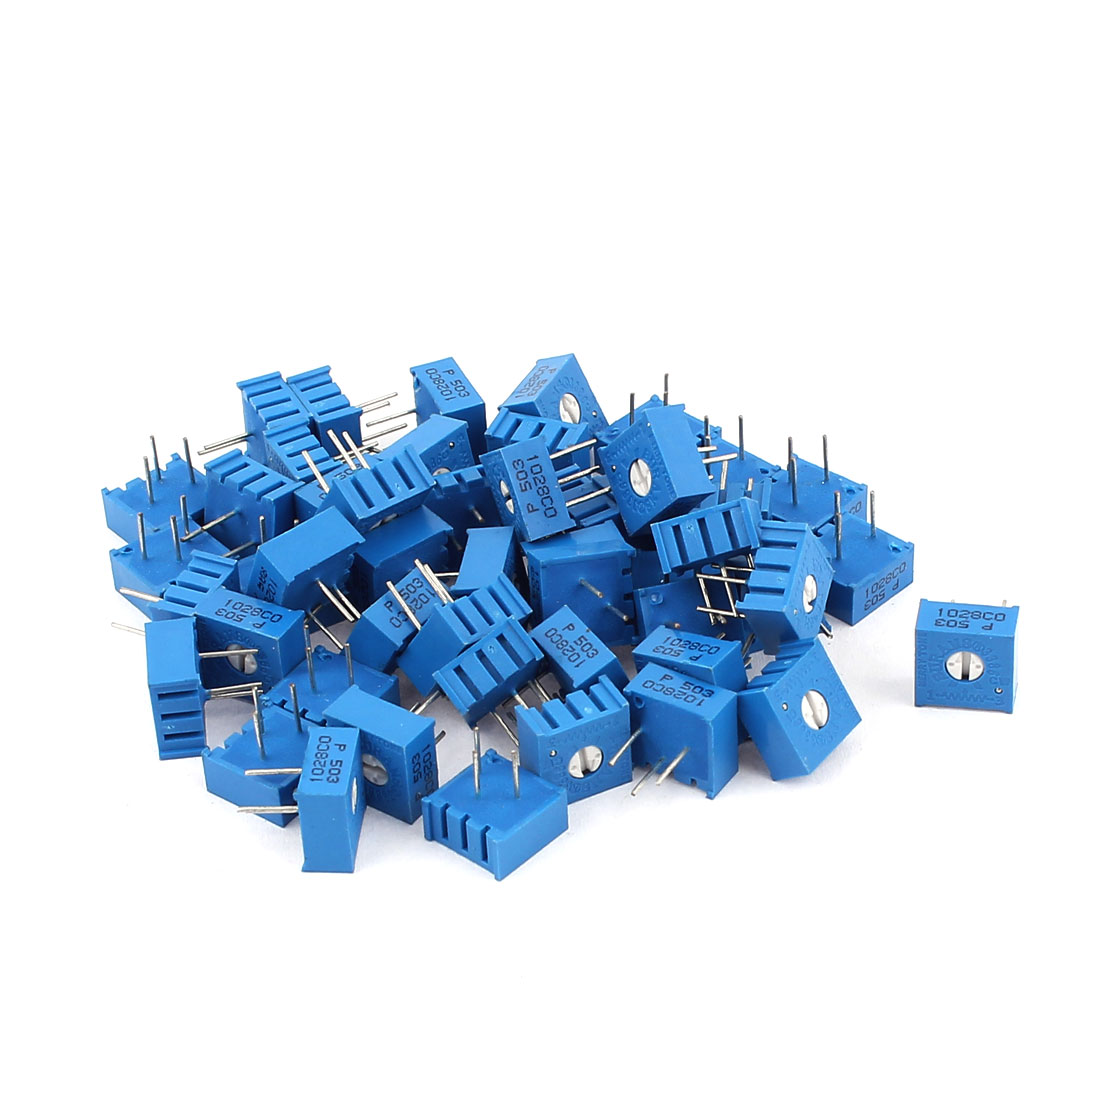 50Pcs Top Adjustment Trimmer Pot Potentiometer Resistors 50K Ohm 3386P